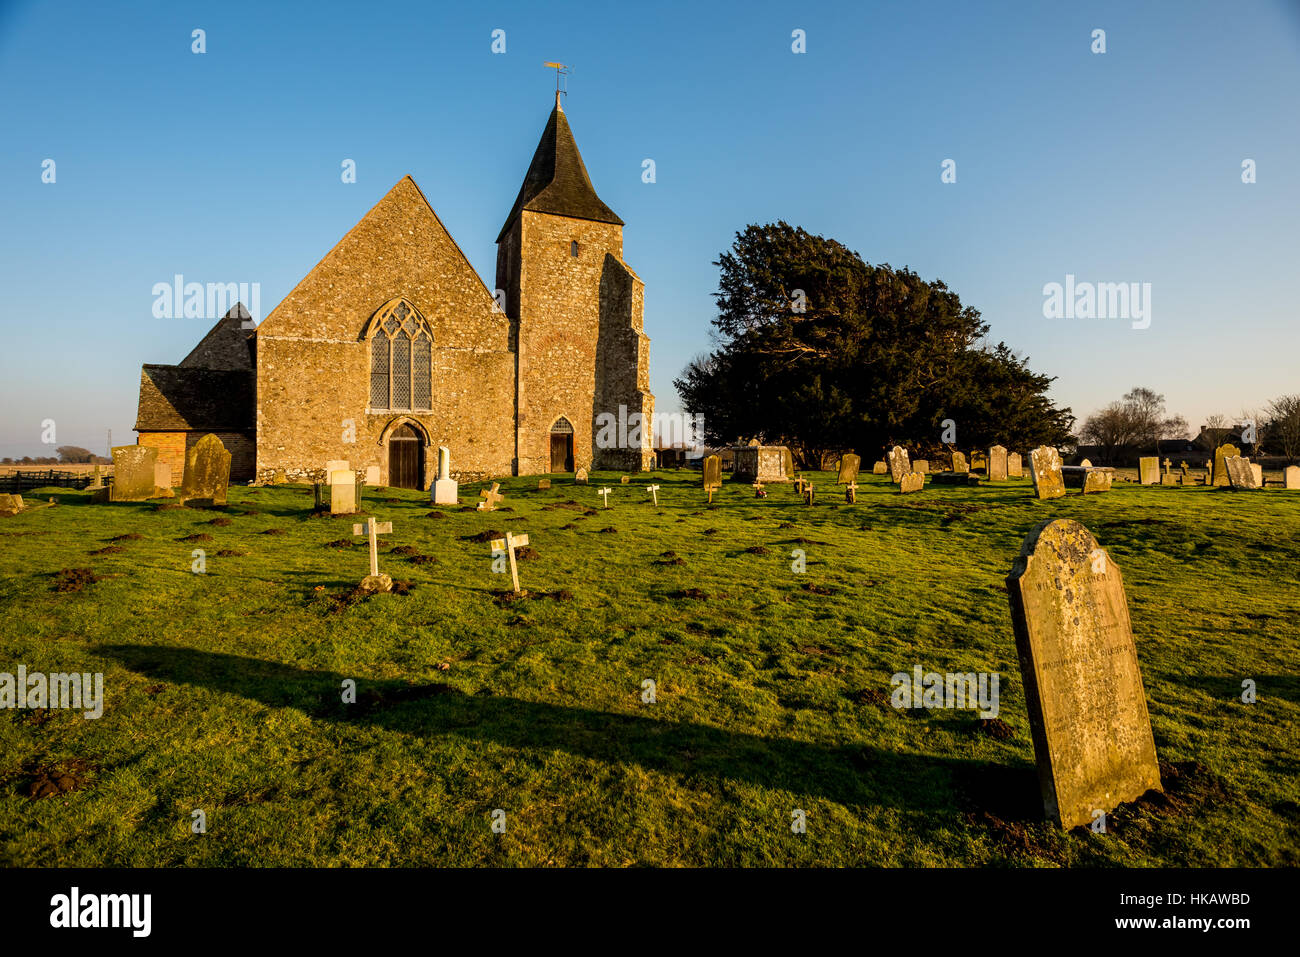 St Clement church in Old Romney, Kent, dating back to the twelfth century Stock Photo